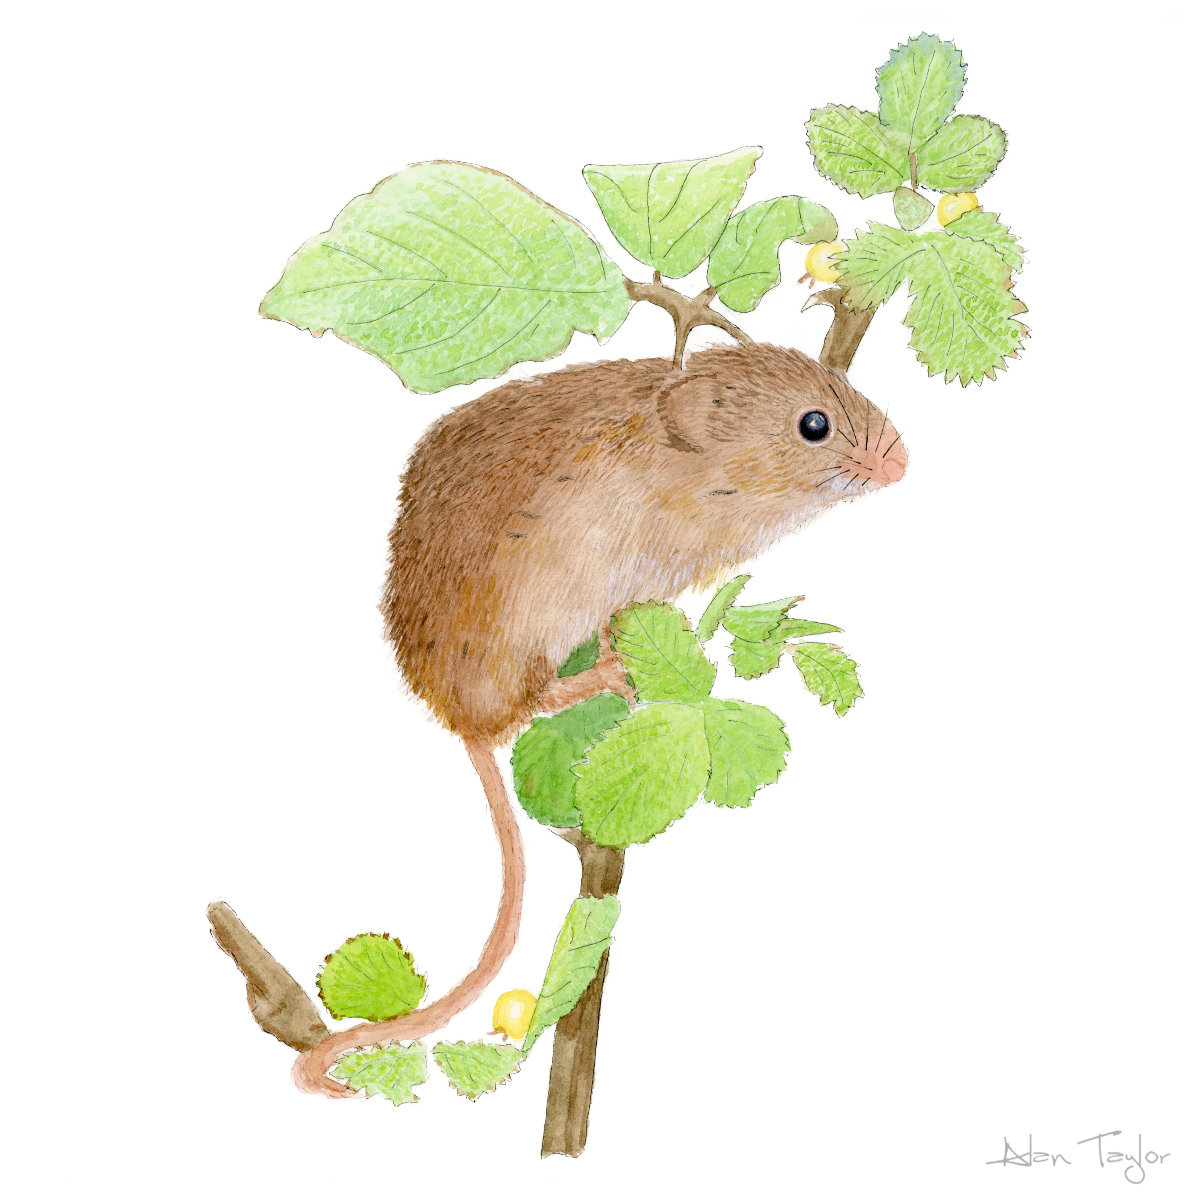 Harvest Mouse ink and watercolour painting by Alan Taylor Art